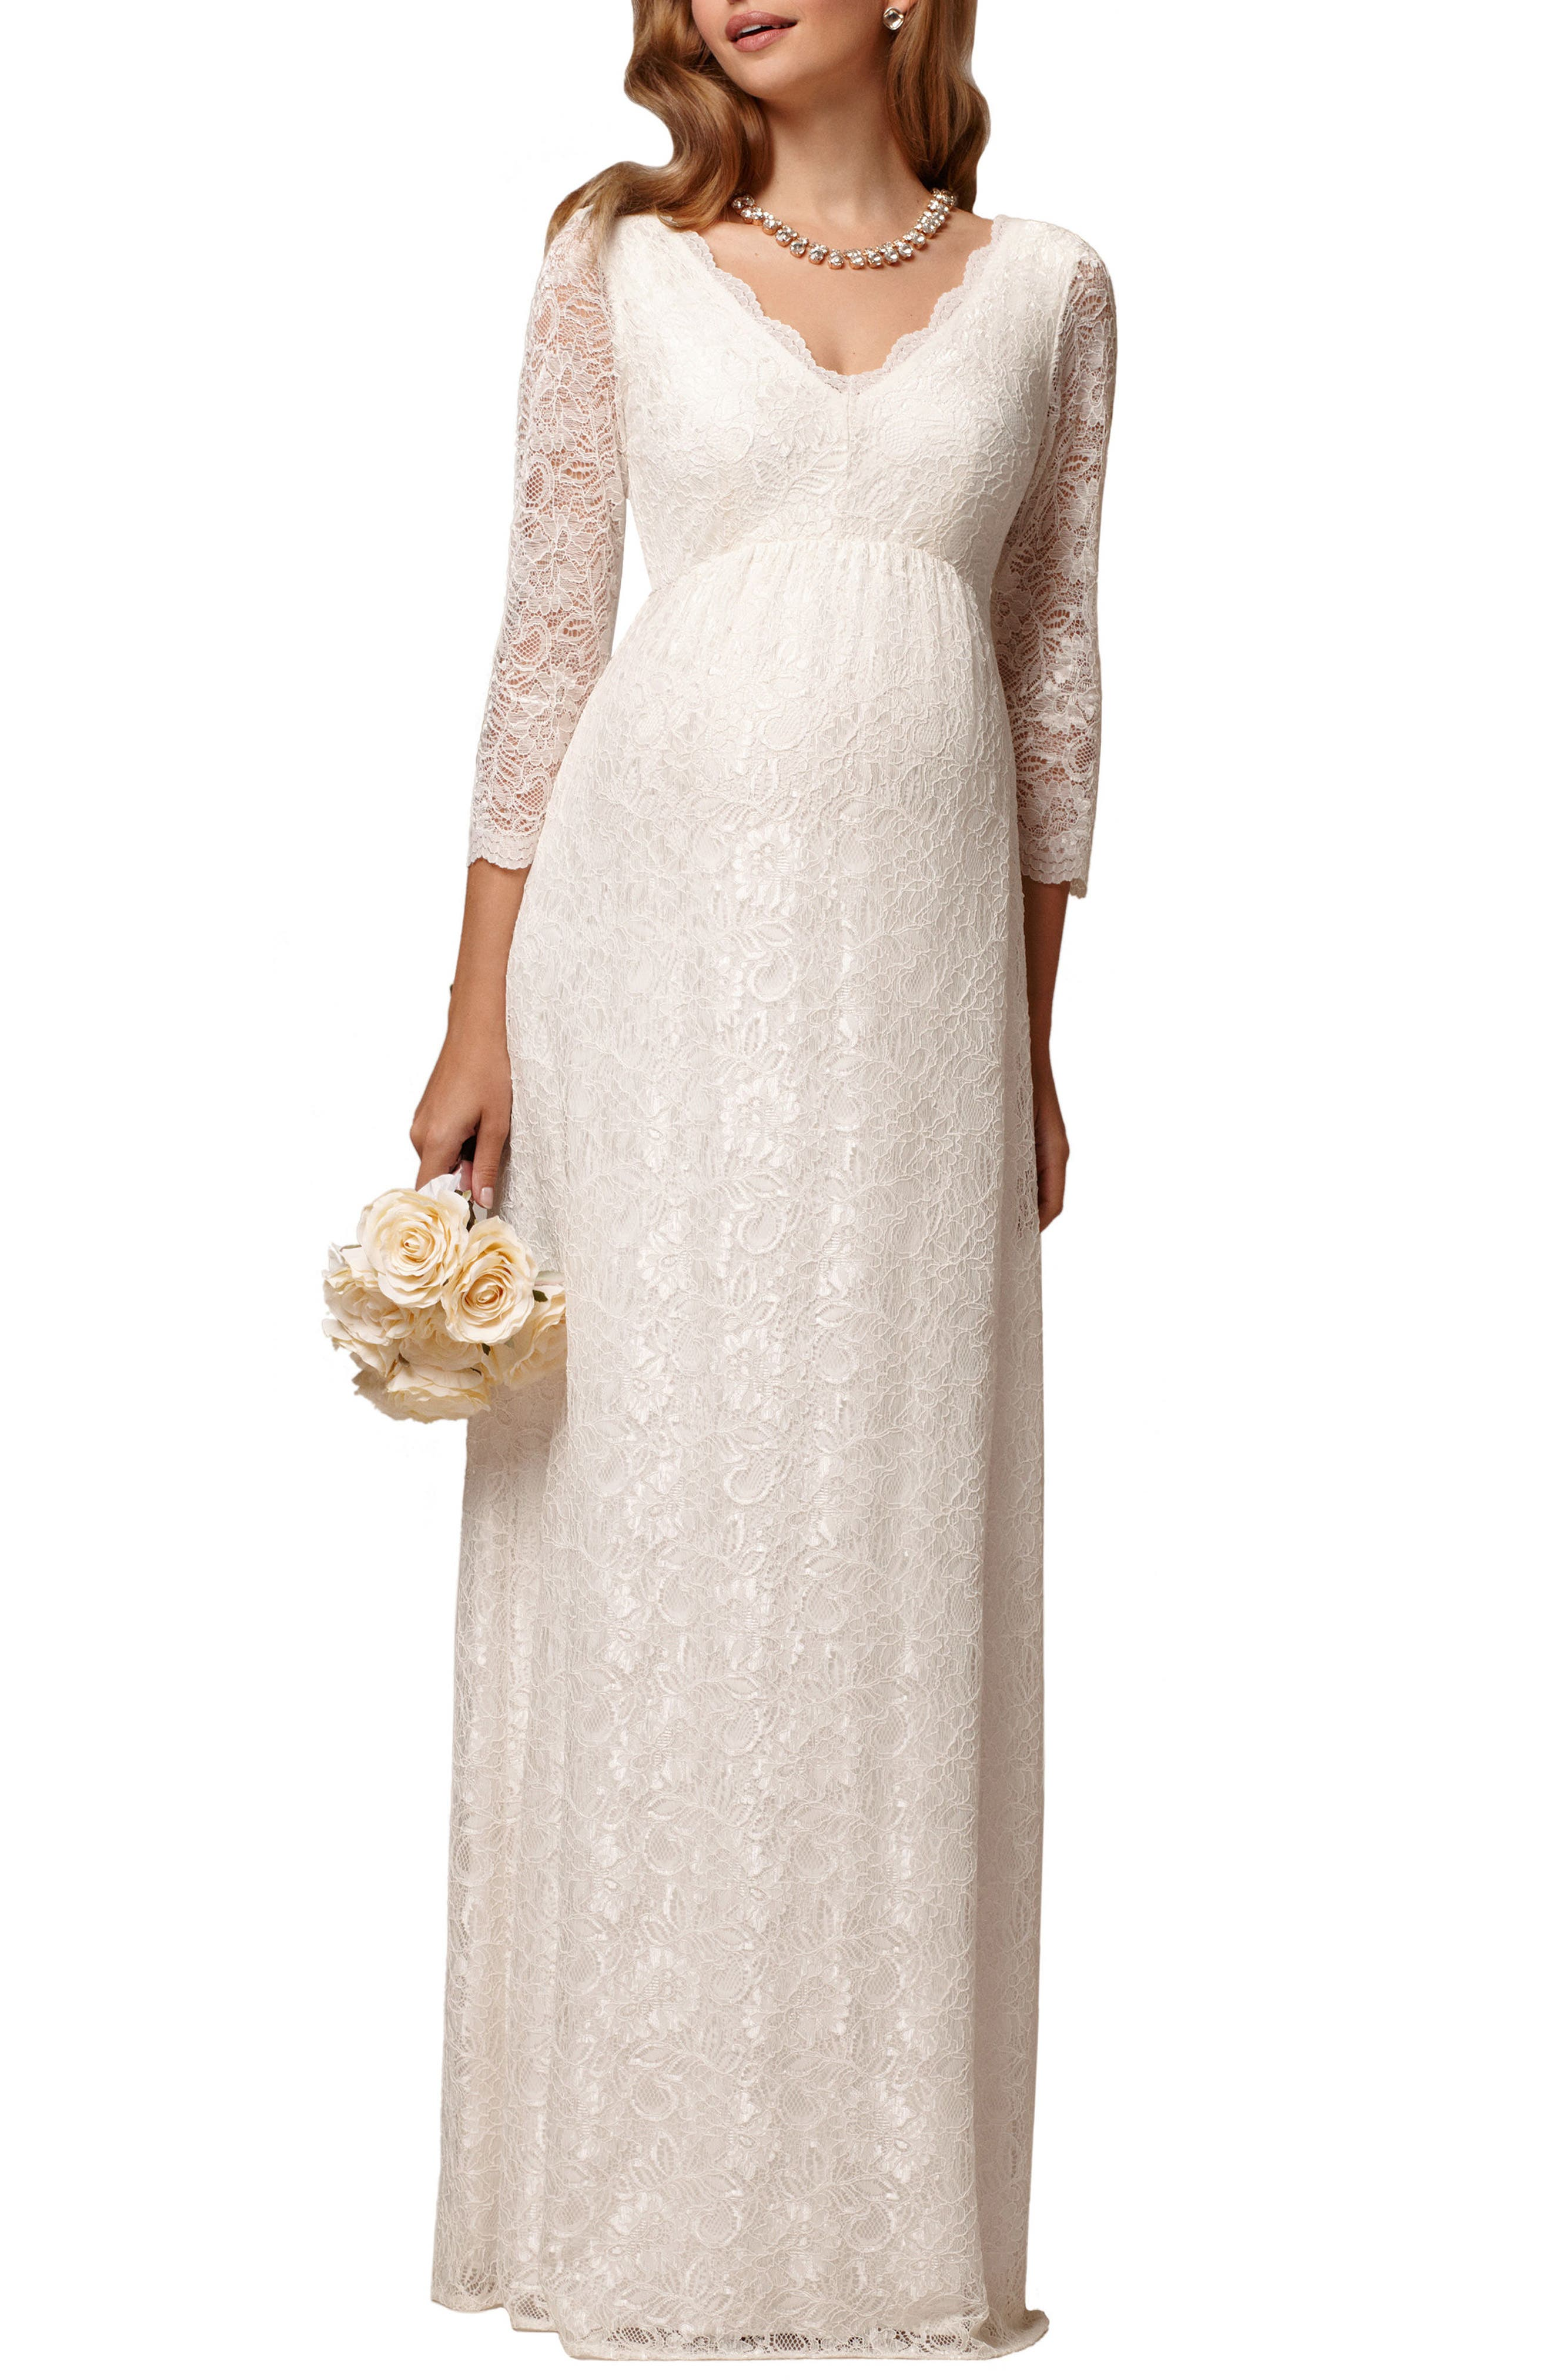 TIFFANY ROSE,                             Chloe Lace Maternity Gown,                             Main thumbnail 1, color,                             IVORY